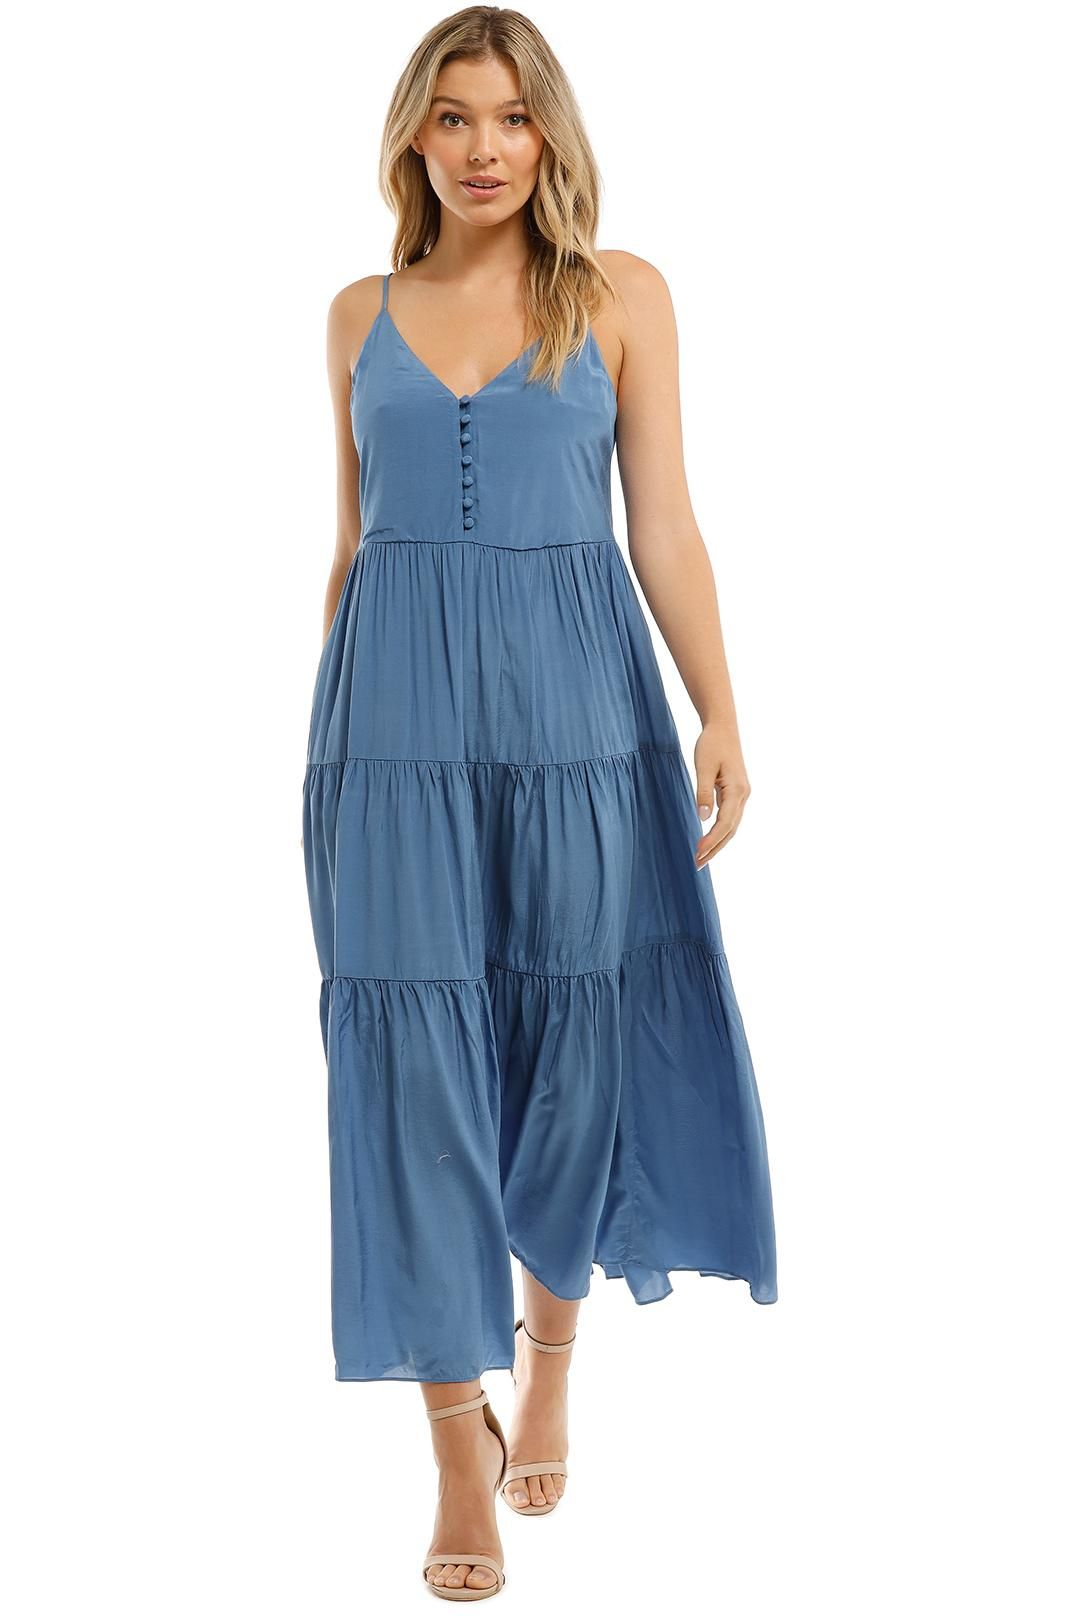 witchery Tiered Button Front Dress Maxi Sleeveless